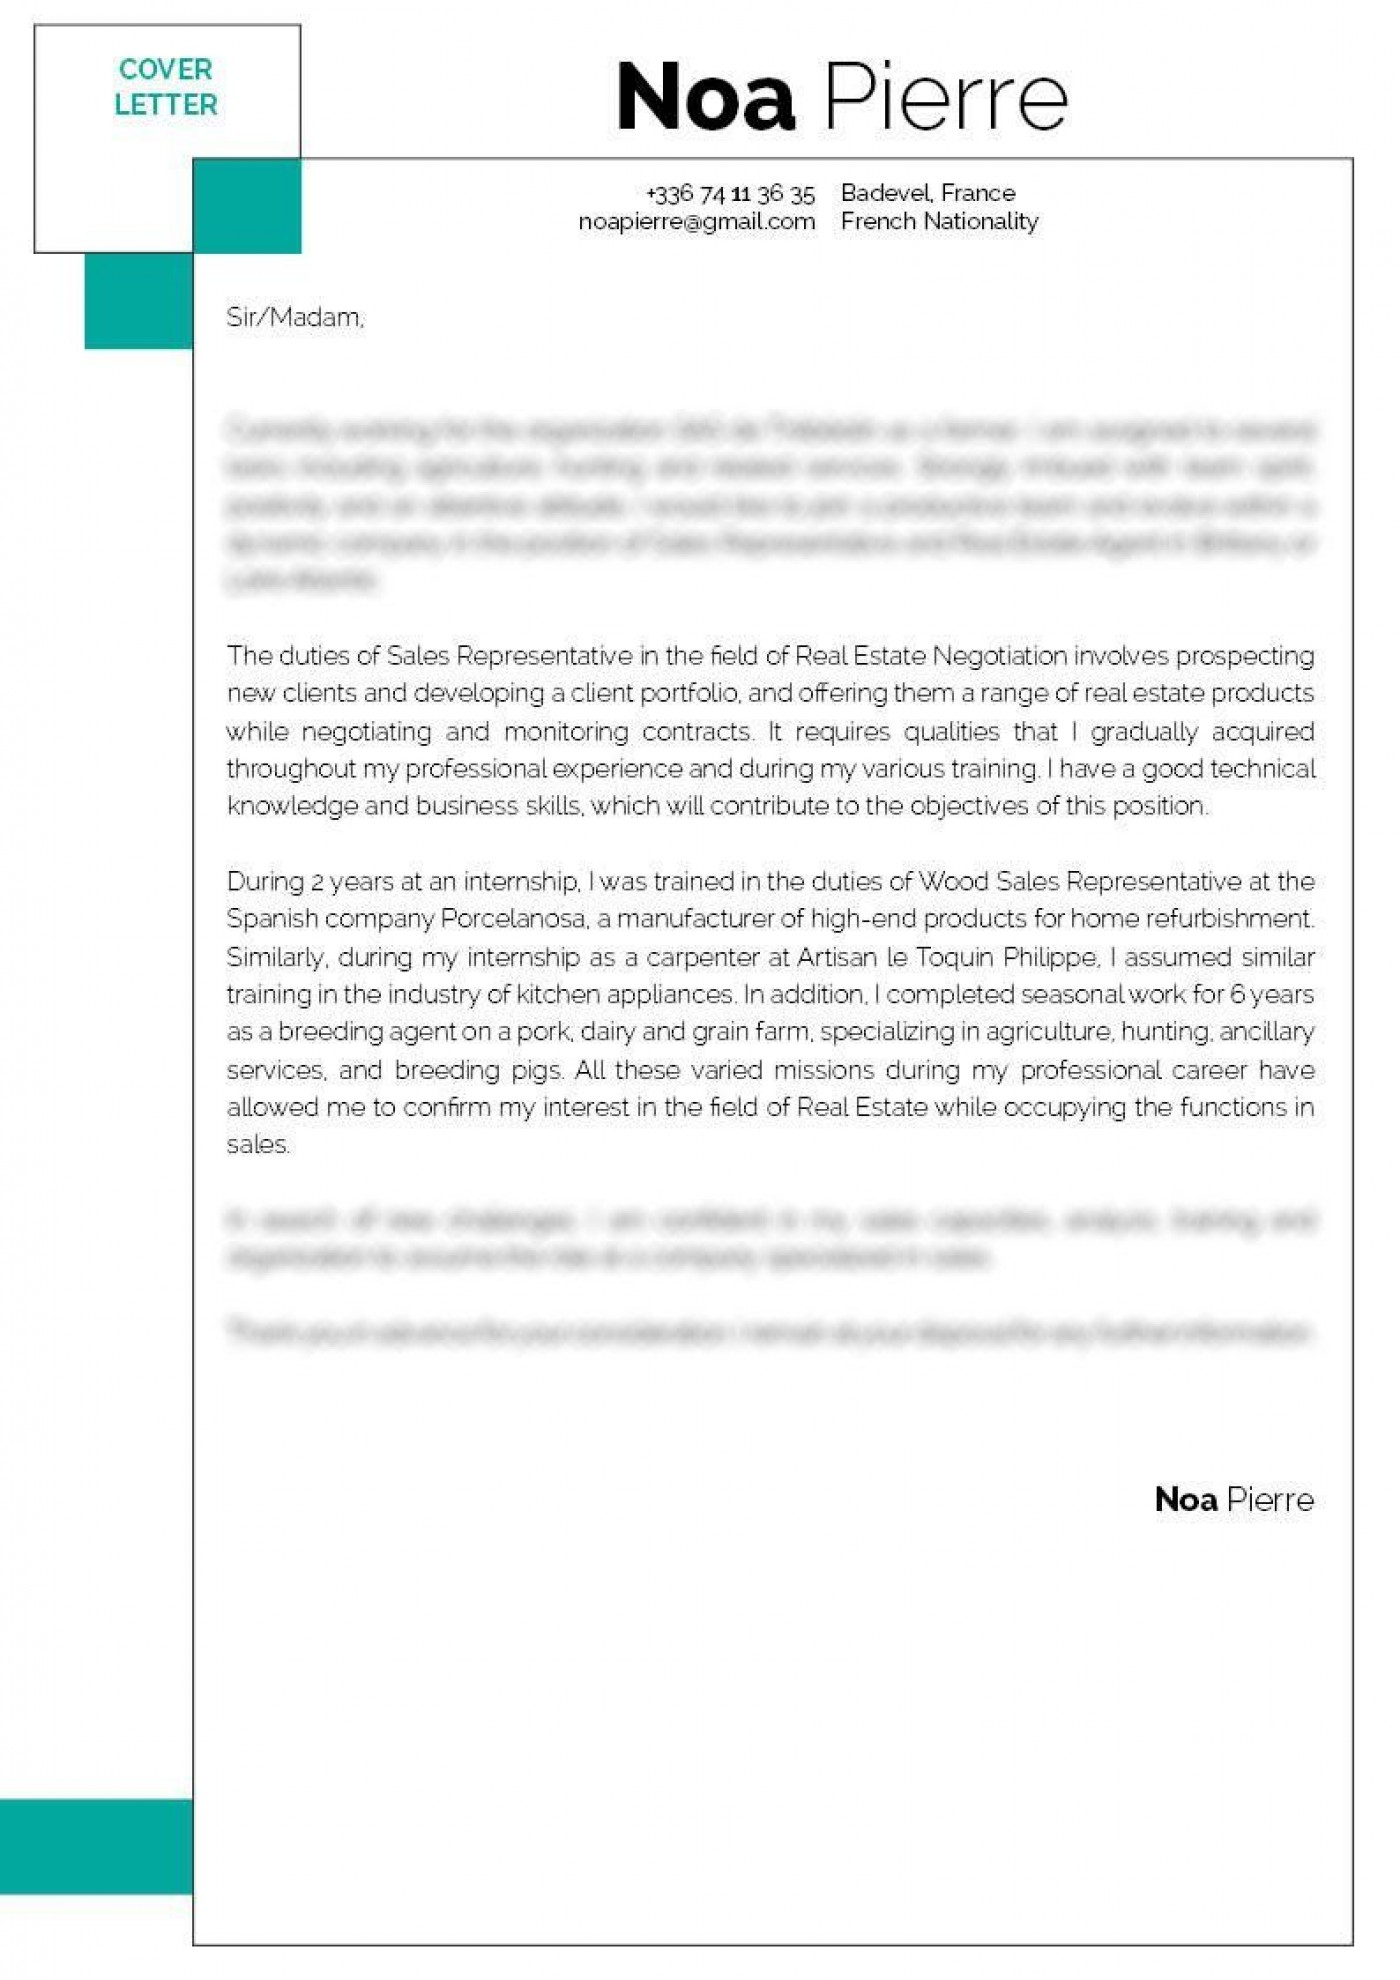 007 Singular Sale Cover Letter Template High Definition  Account Manager Word Rep1400